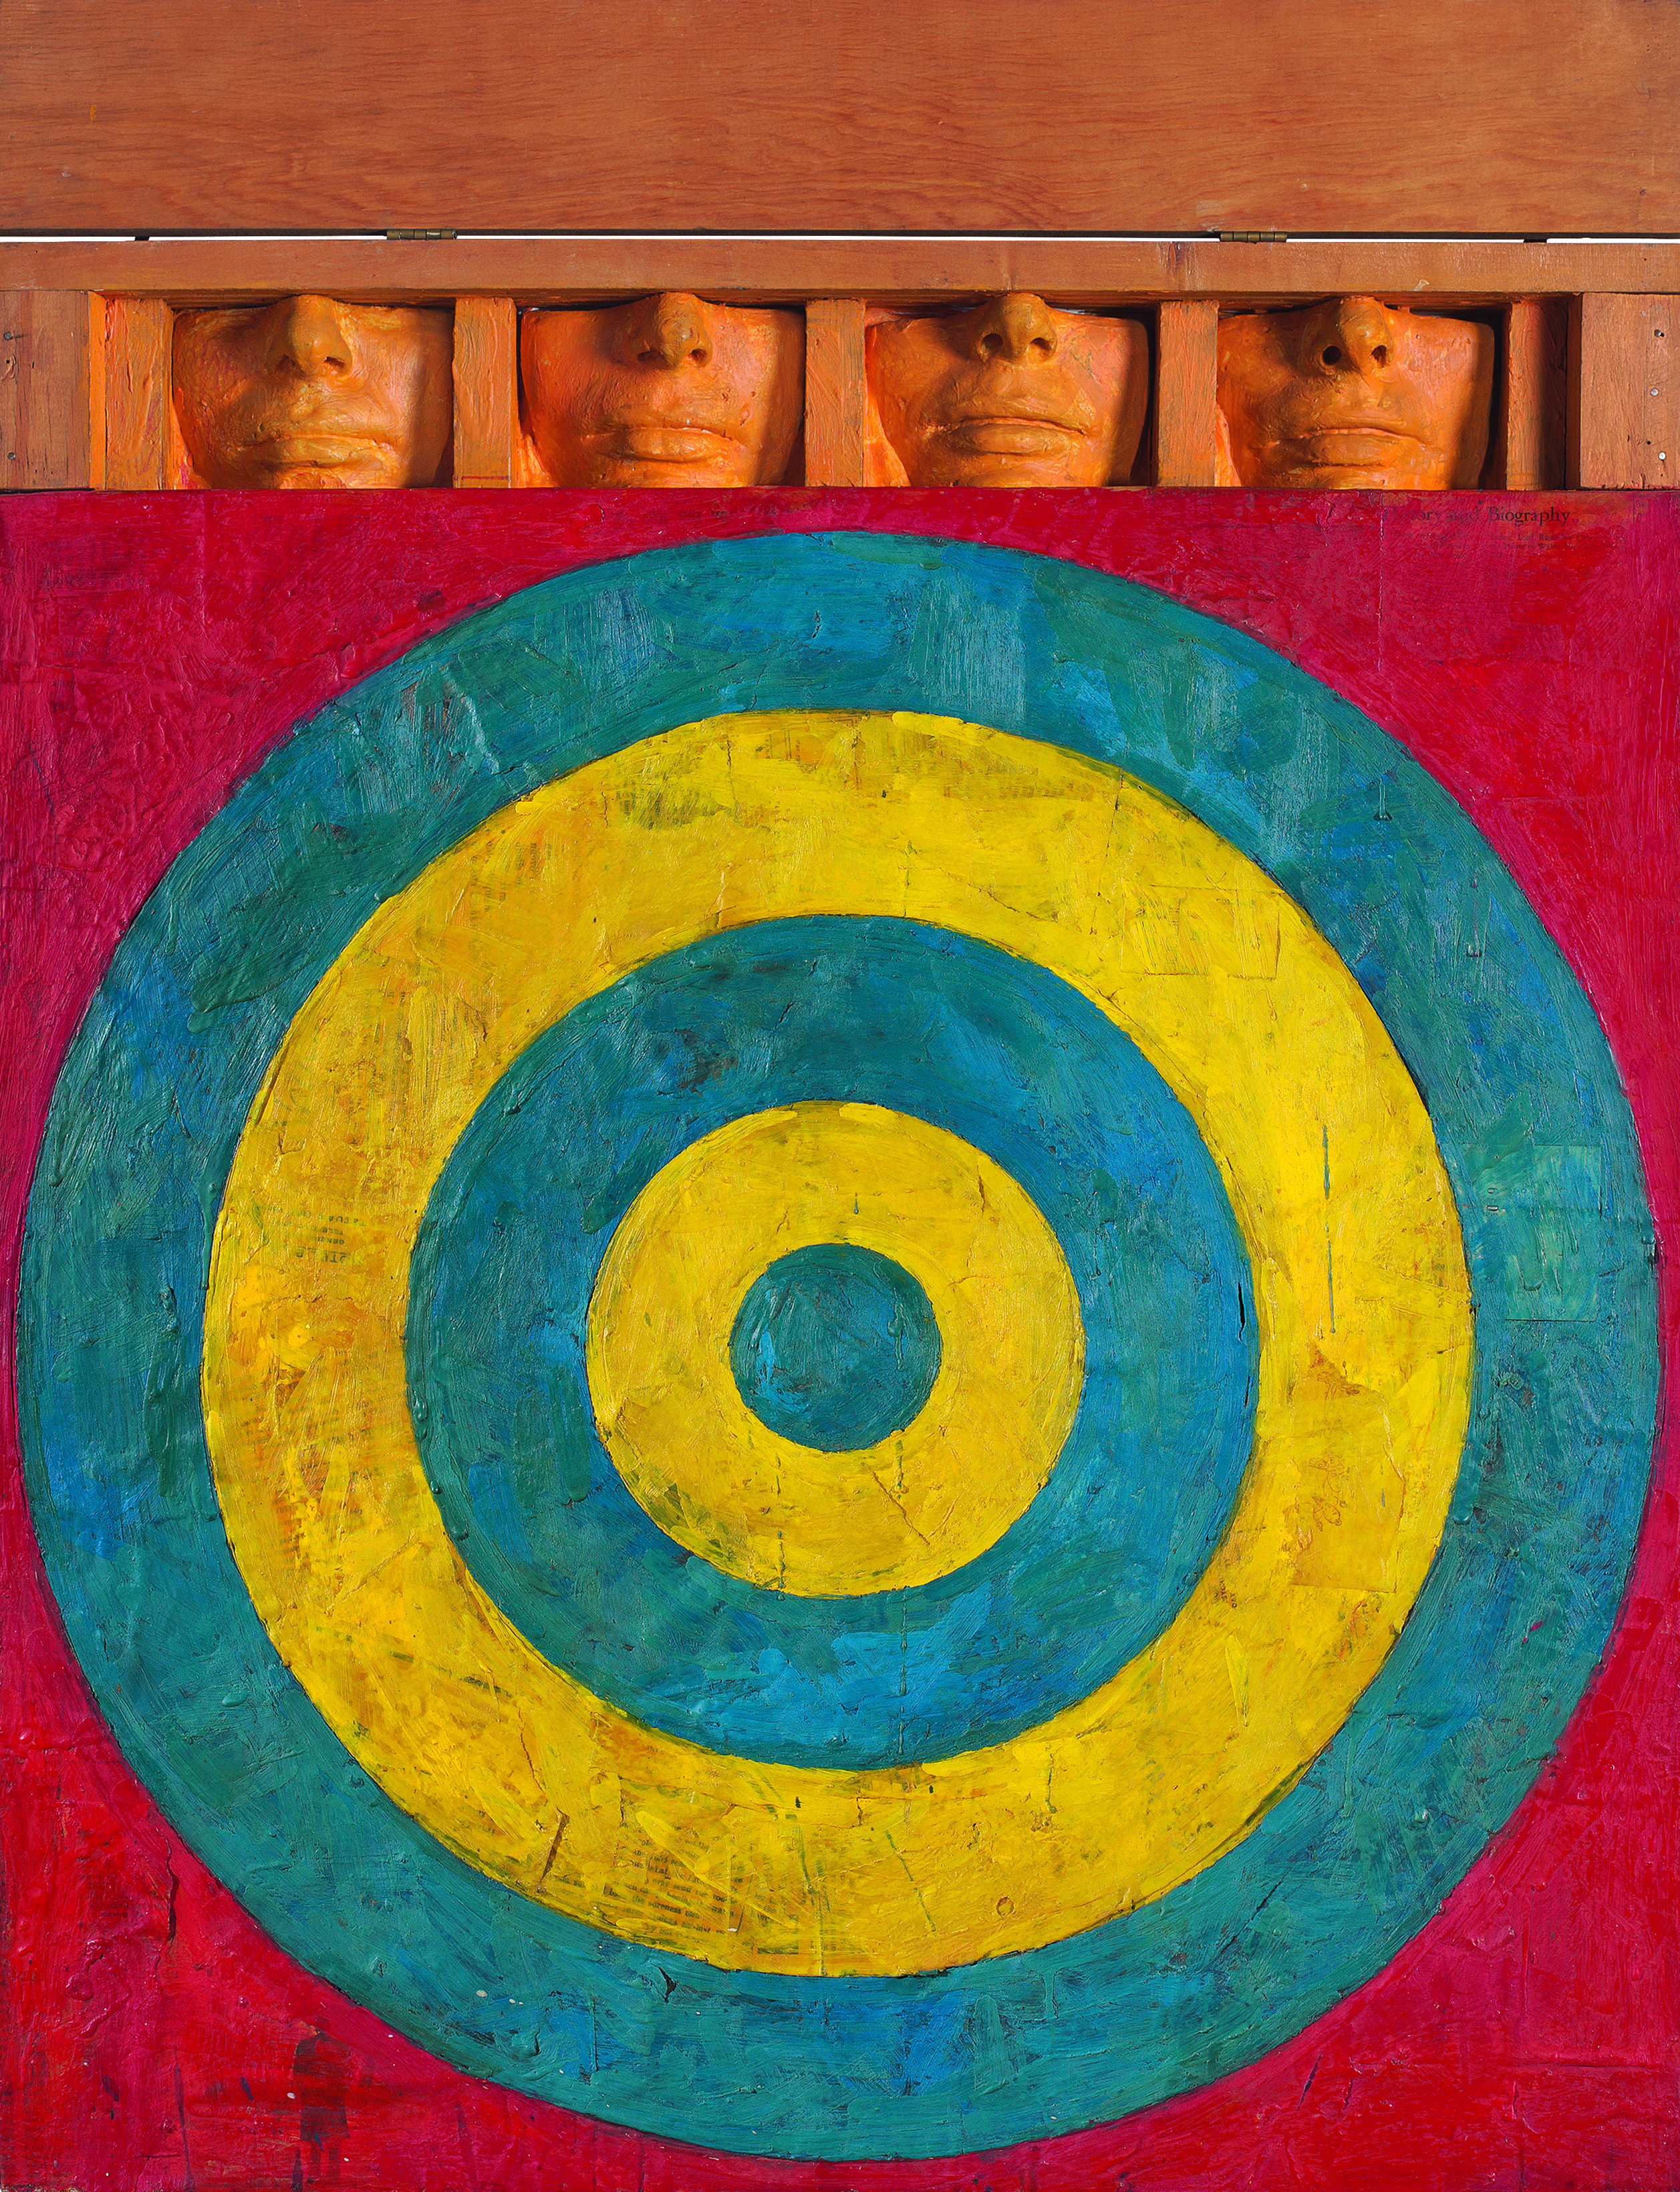 Jasper Johns, _Target with Four Faces_, 1955. Encaustic and collage on canvas with objects, 29 3/4 × 26 in. (75.6 × 66 cm). The Museum of Modern Art, New York; gift of Mr. and Mrs. Robert C. Scull 8.1958. © 2021 Jasper Johns / Licensed by VAGA at Artists Rights Society (ARS), NY. Photograph by Jamie Stukenberg, Professional Graphics, Rockford, Illinois.